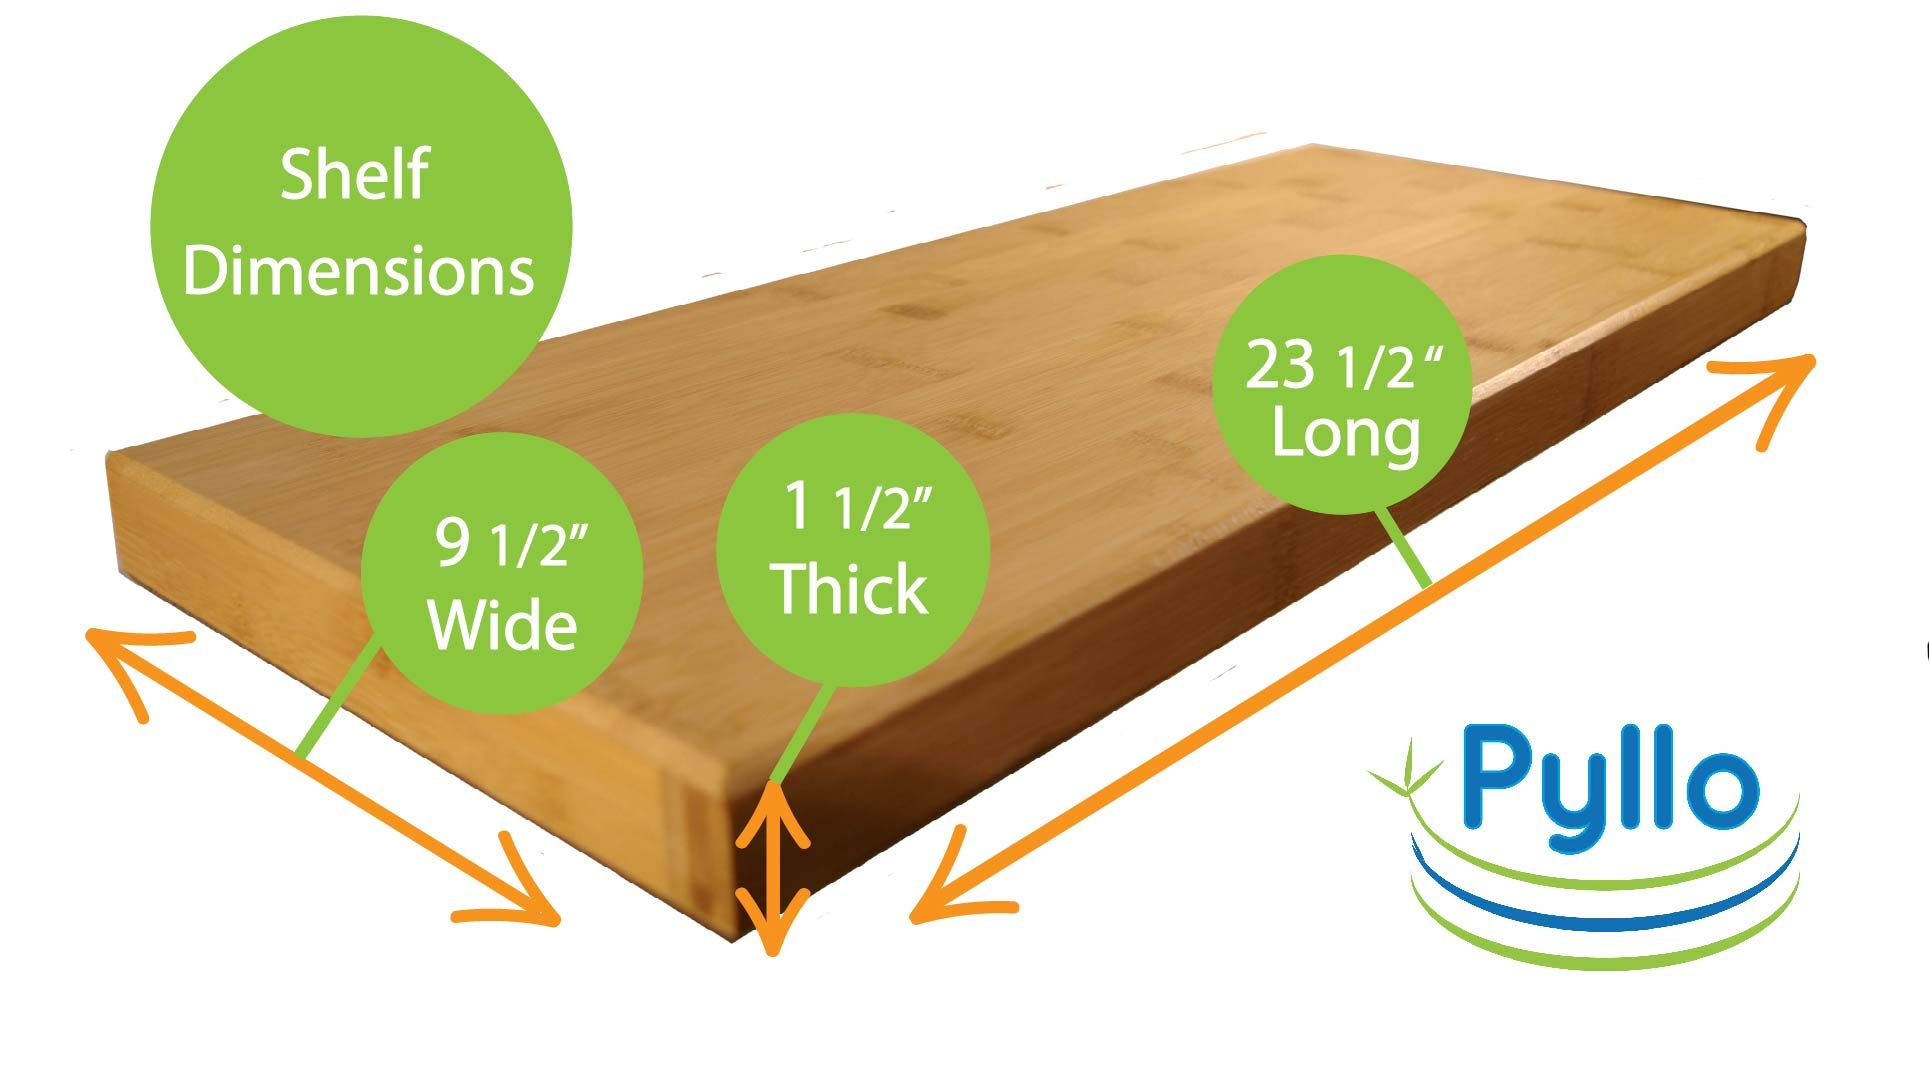 "Pyllo Bamboo Floating Shelf - Floating Wall Shelves with Hidden Bracket - Made from 100% Bamboo - 23 5/8"" X 9 1/4"" X 1 1/2"" - Easy Installation - PREMIUM QUALITY ECO-FRIENDLY BAMBOO SHELF - NO MDF (Particle Board) : Perfect For Office, Kitchen, Bedroom, Bathroom, Nursery, or Anywhere Around Your Home. EXTRA WIDE 9 1/2 Inches , Makes A Great Display Shelf For Books, Pictures, or Collectibles. The Durable Natural Carbonized Finish is Easy to Clean and Will Last For Years. EASILY HOLDS UP TO 25 POUNDS - With Our Wall Mounted Shelves, Only One Single Hidden Bracket Is Needed, Which Makes For EASY INSTALLATION! No Exposed Shelf Brackets To Get In Your Way. Hidden Mounting Bracket Gives a Floating Shelf Appearance... EASY TO FOLLOW INSTRUCTIONS, with Drywall Anchors, That Require NO DRILLING and Screws Included. BAMBOO IS NATURALLY ANTIBACTERIAL, ANTIMICROBIAL and WATER RESISTANT, which makes them Perfect for Bathrooms and Nurseries. These Floating Wall Shelves are not only Beautiful, but Durable as well. Bamboo will hold up to dings and spills. Our Bamboo comes from sustainable forests. - wall-shelves, living-room-furniture, living-room - 61v7BlLMBqL -"